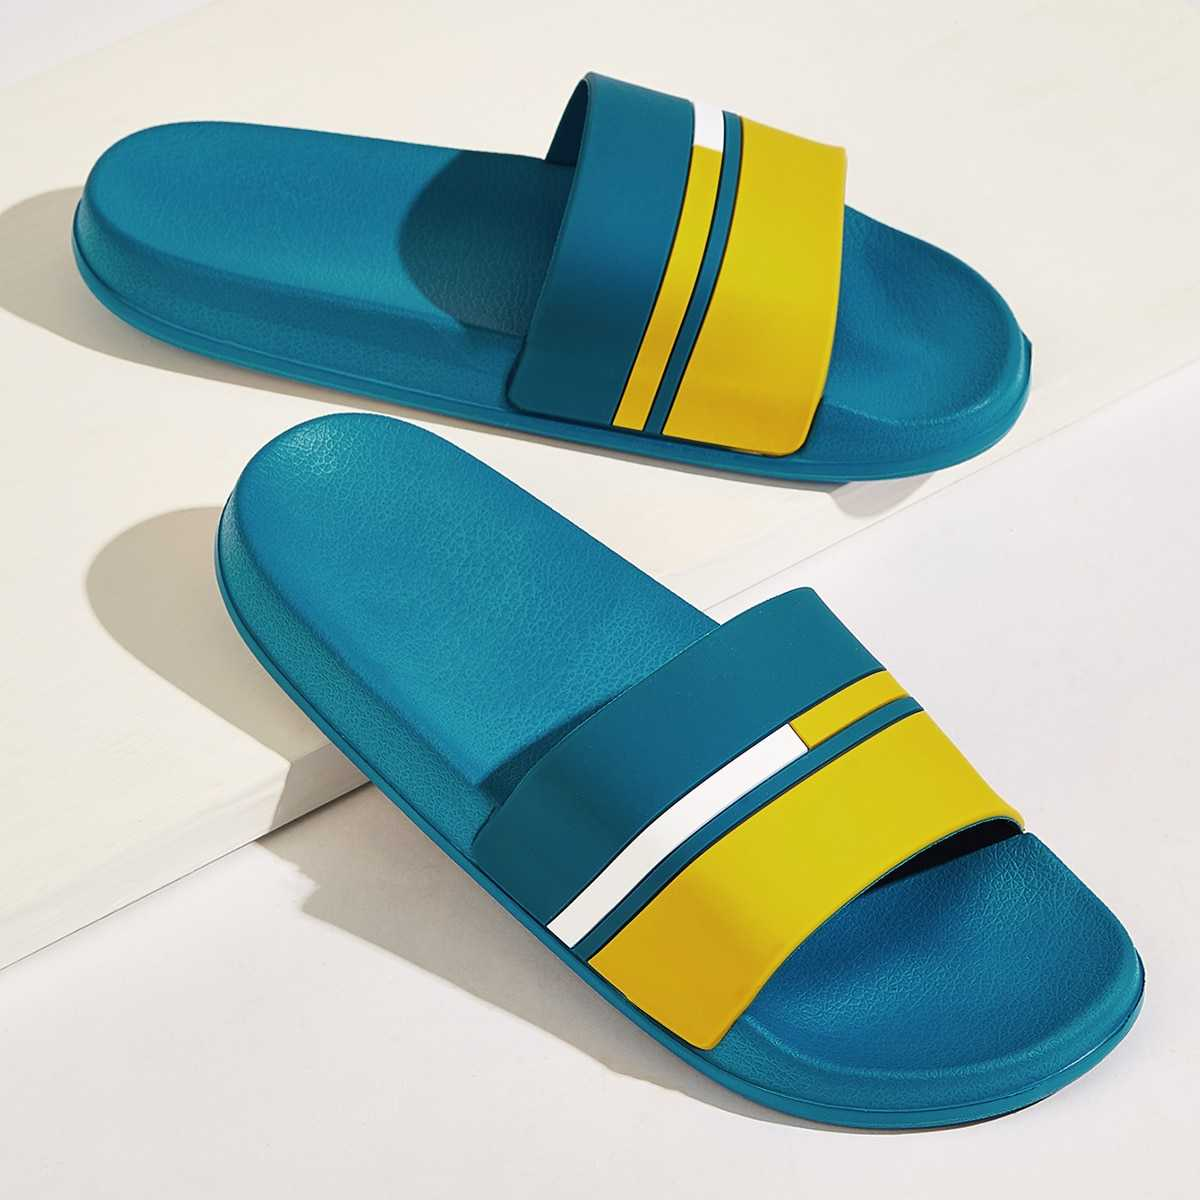 Guys Color Block Open Toe Sliders in Multicolor by ROMWE on GOOFASH